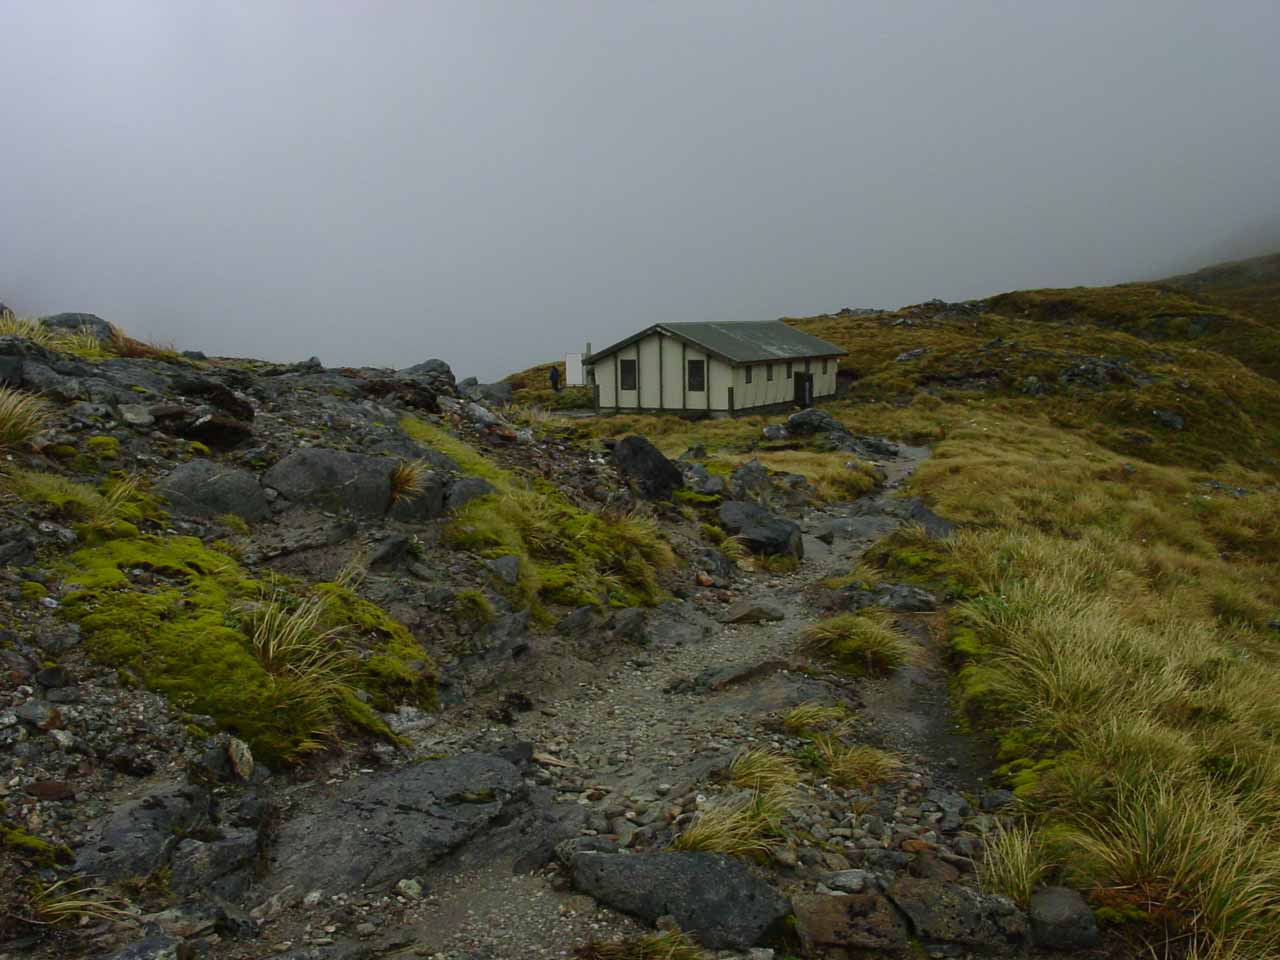 The Pass Hut Shelter